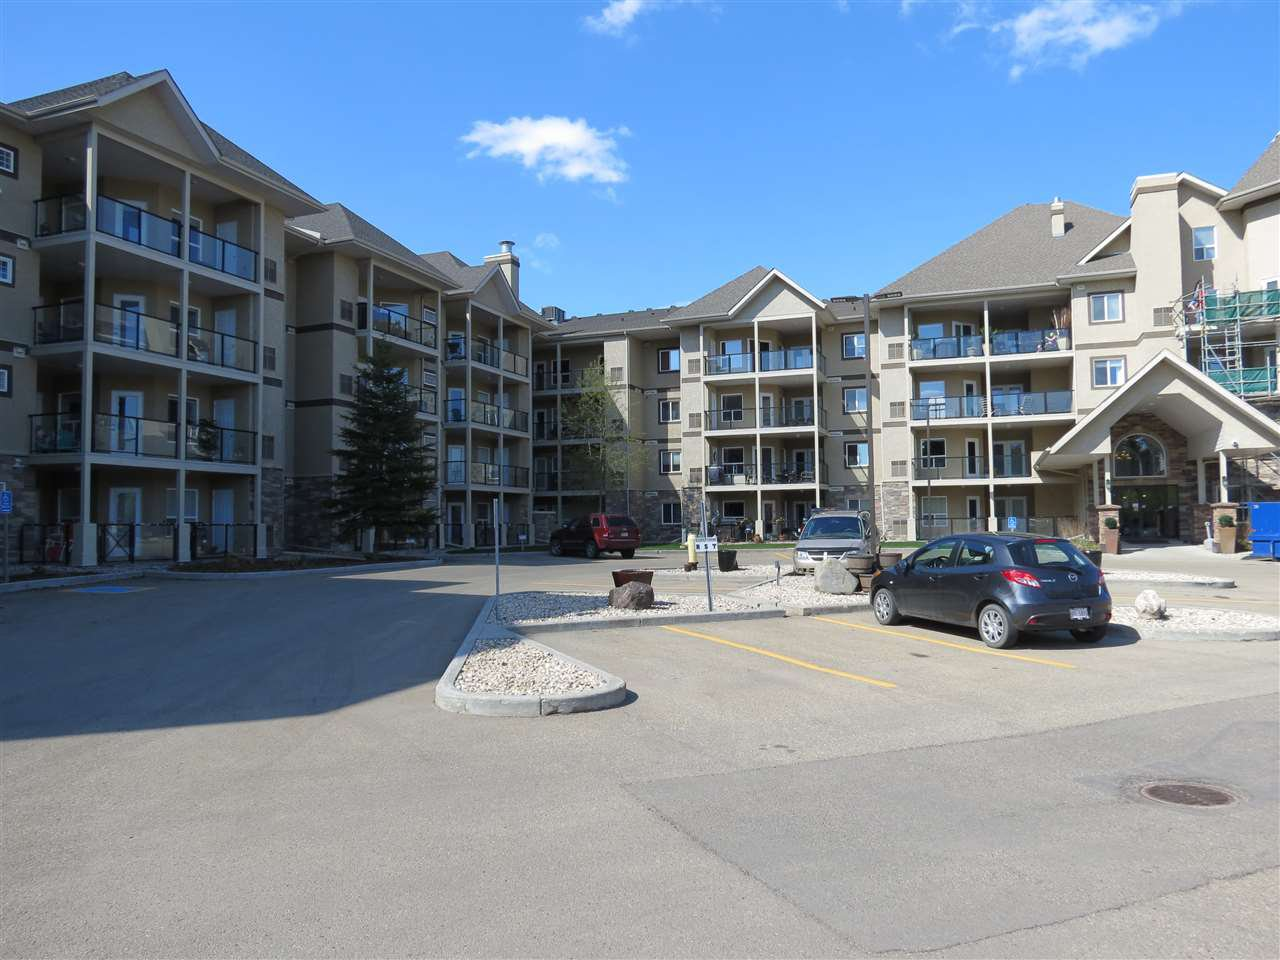 Main Photo: 403 1320 RUTHERFORD Road in Edmonton: Zone 55 Condo for sale : MLS®# E4197039